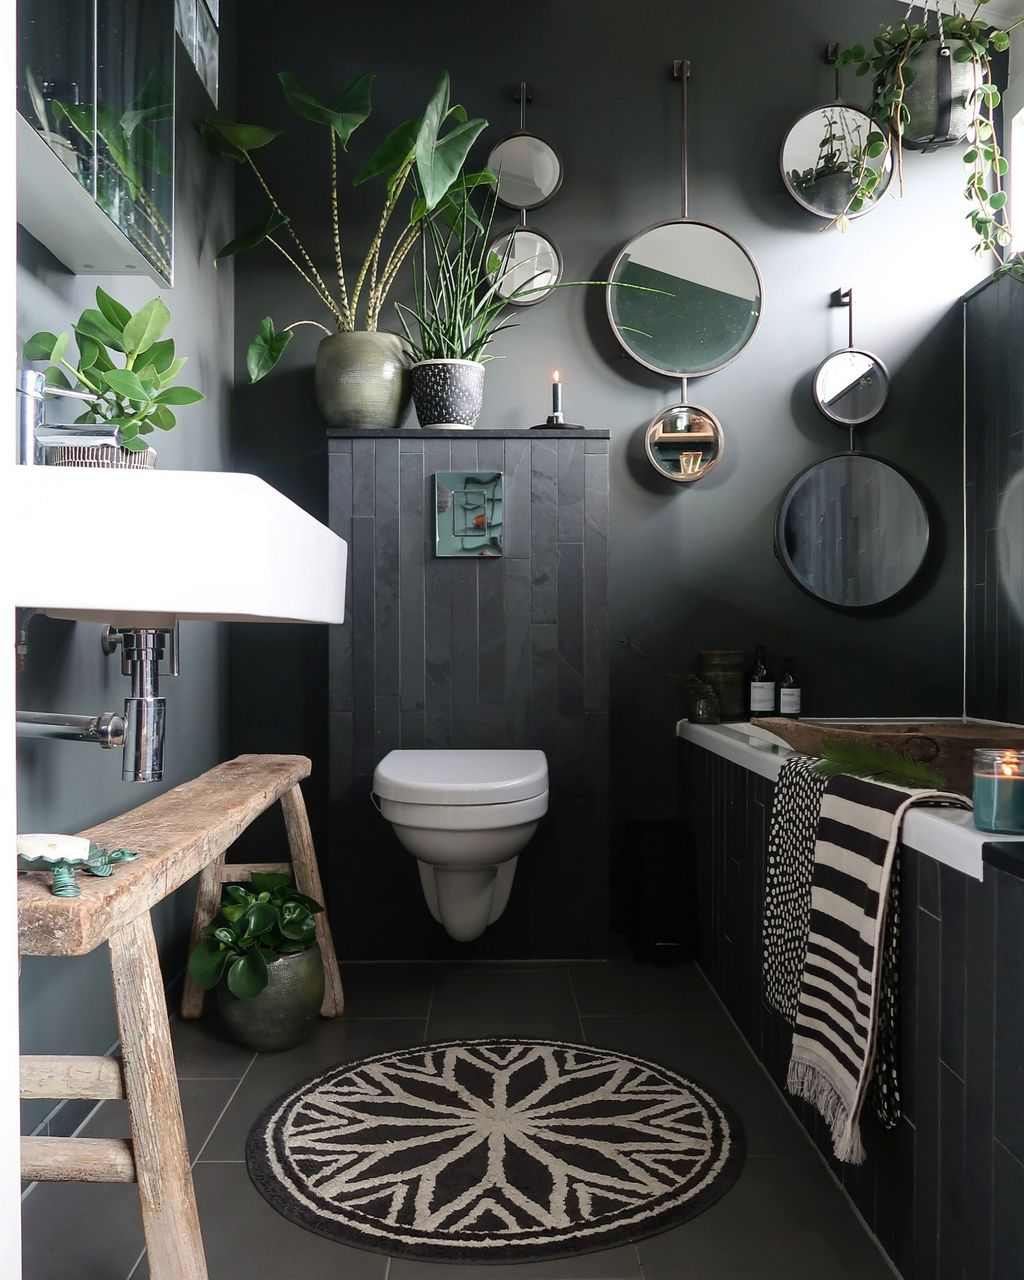 The Best Jungle Bathroom Decor Ideas To Get A Natural Impression 04